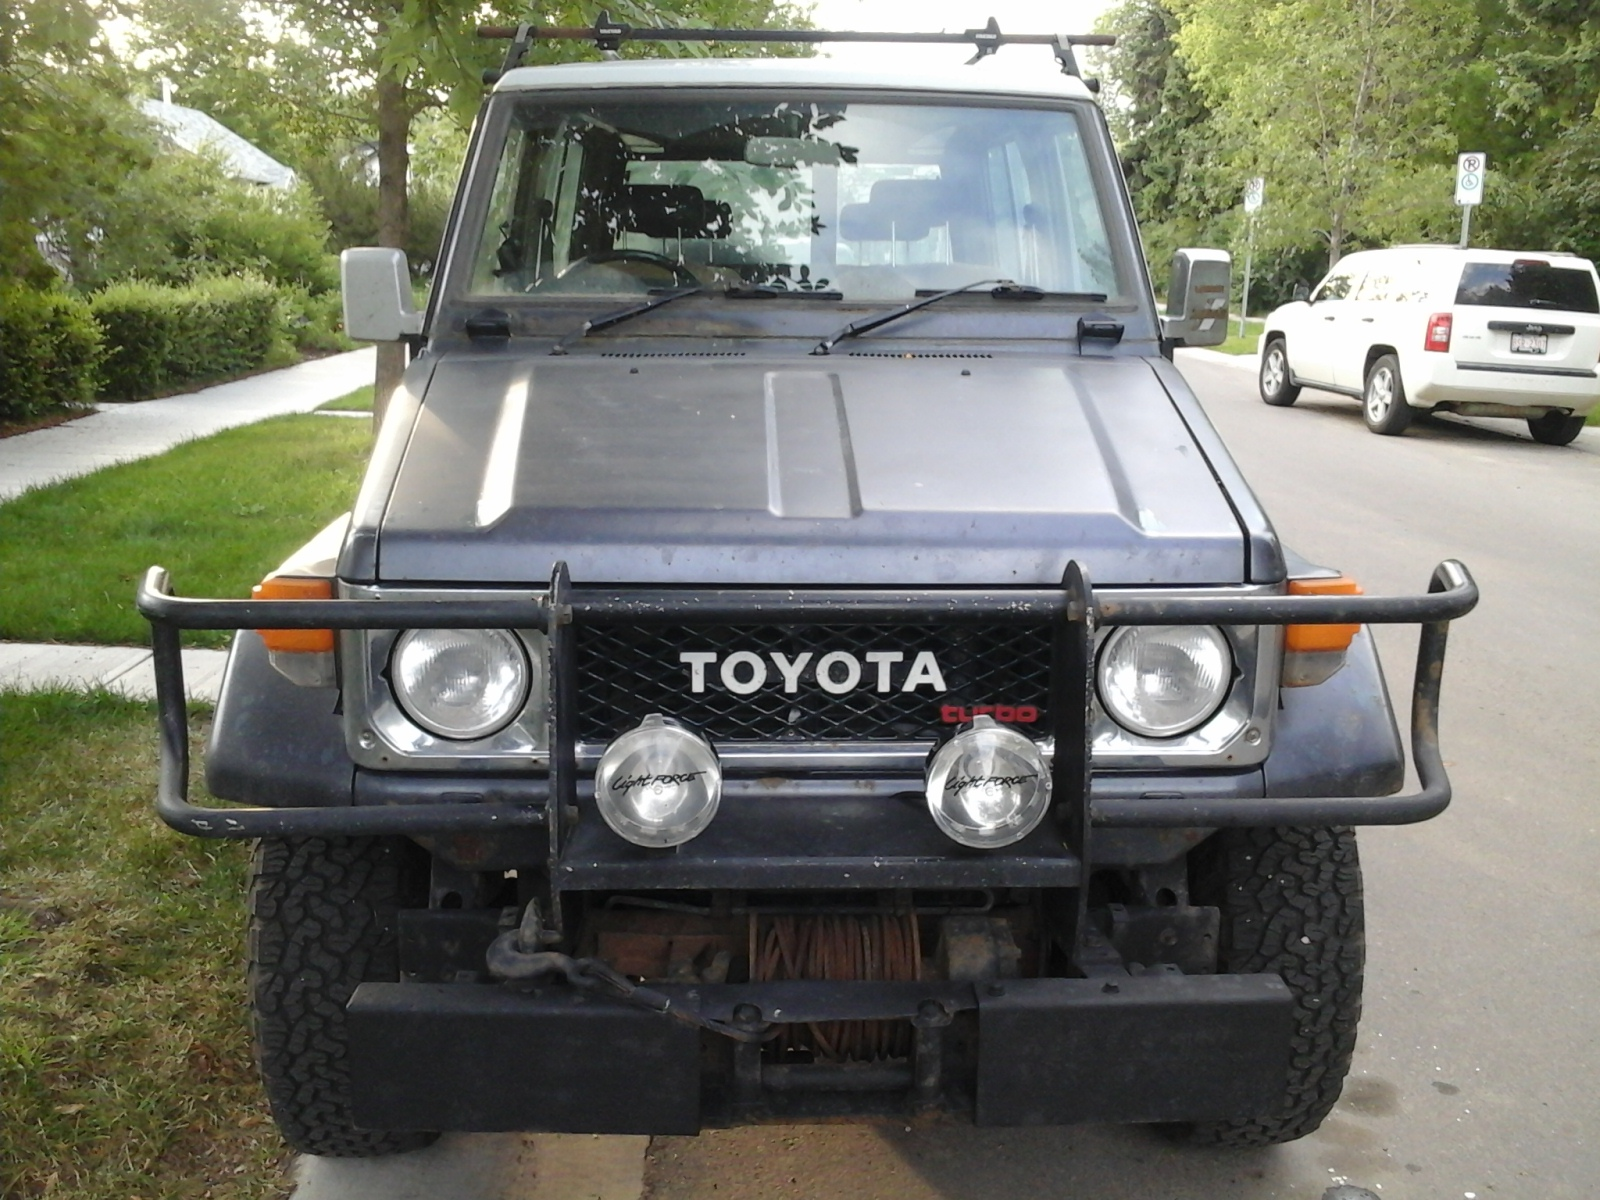 Toyota Suv Kijiji Edmonton: For Sale - BJ74 For Sale In Alberta